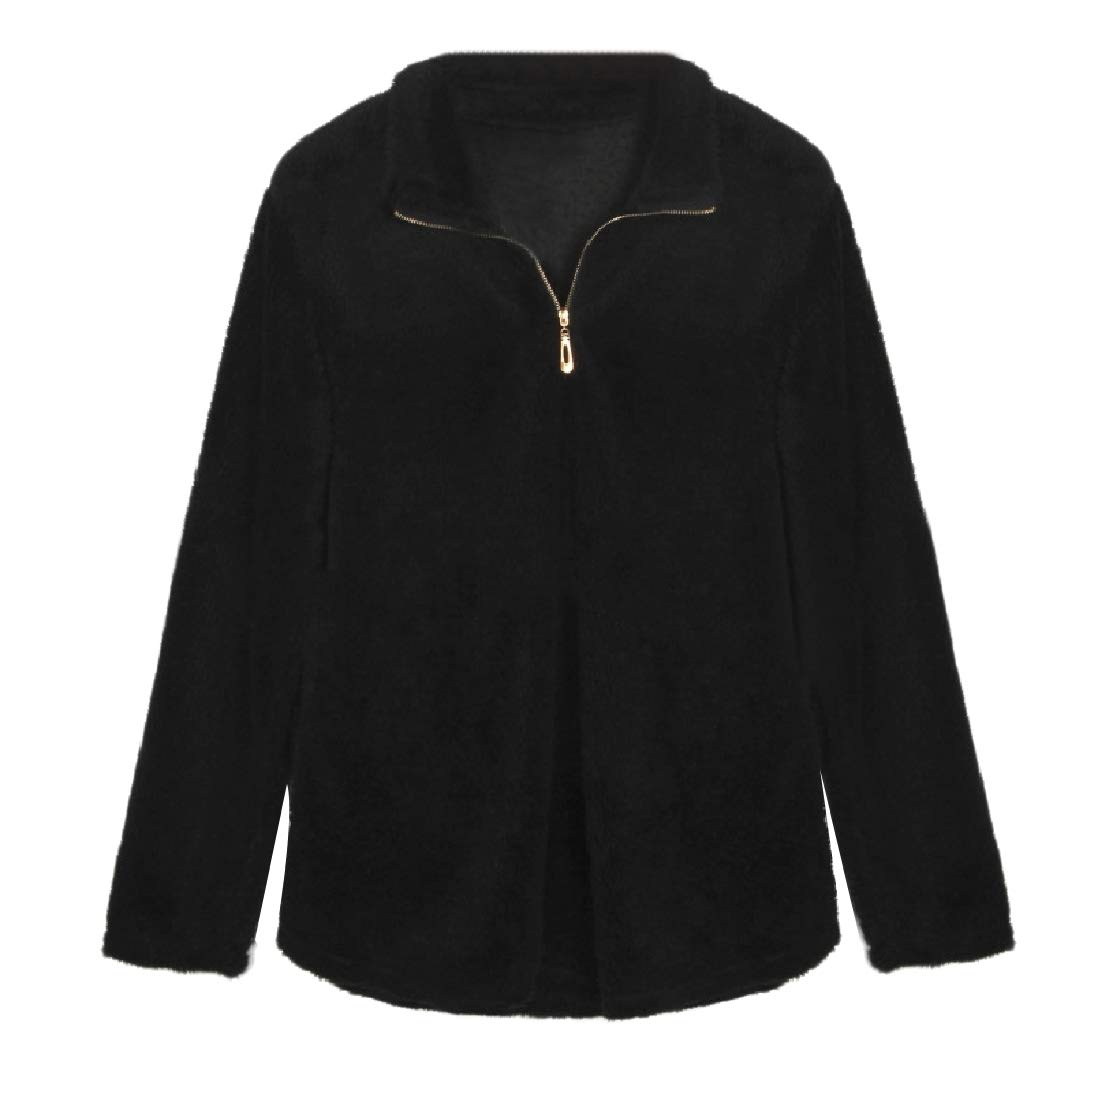 YUNY Women Hairy Stand-up Collar Long Sleeve Slim Fit Pocket Pullover Black XS